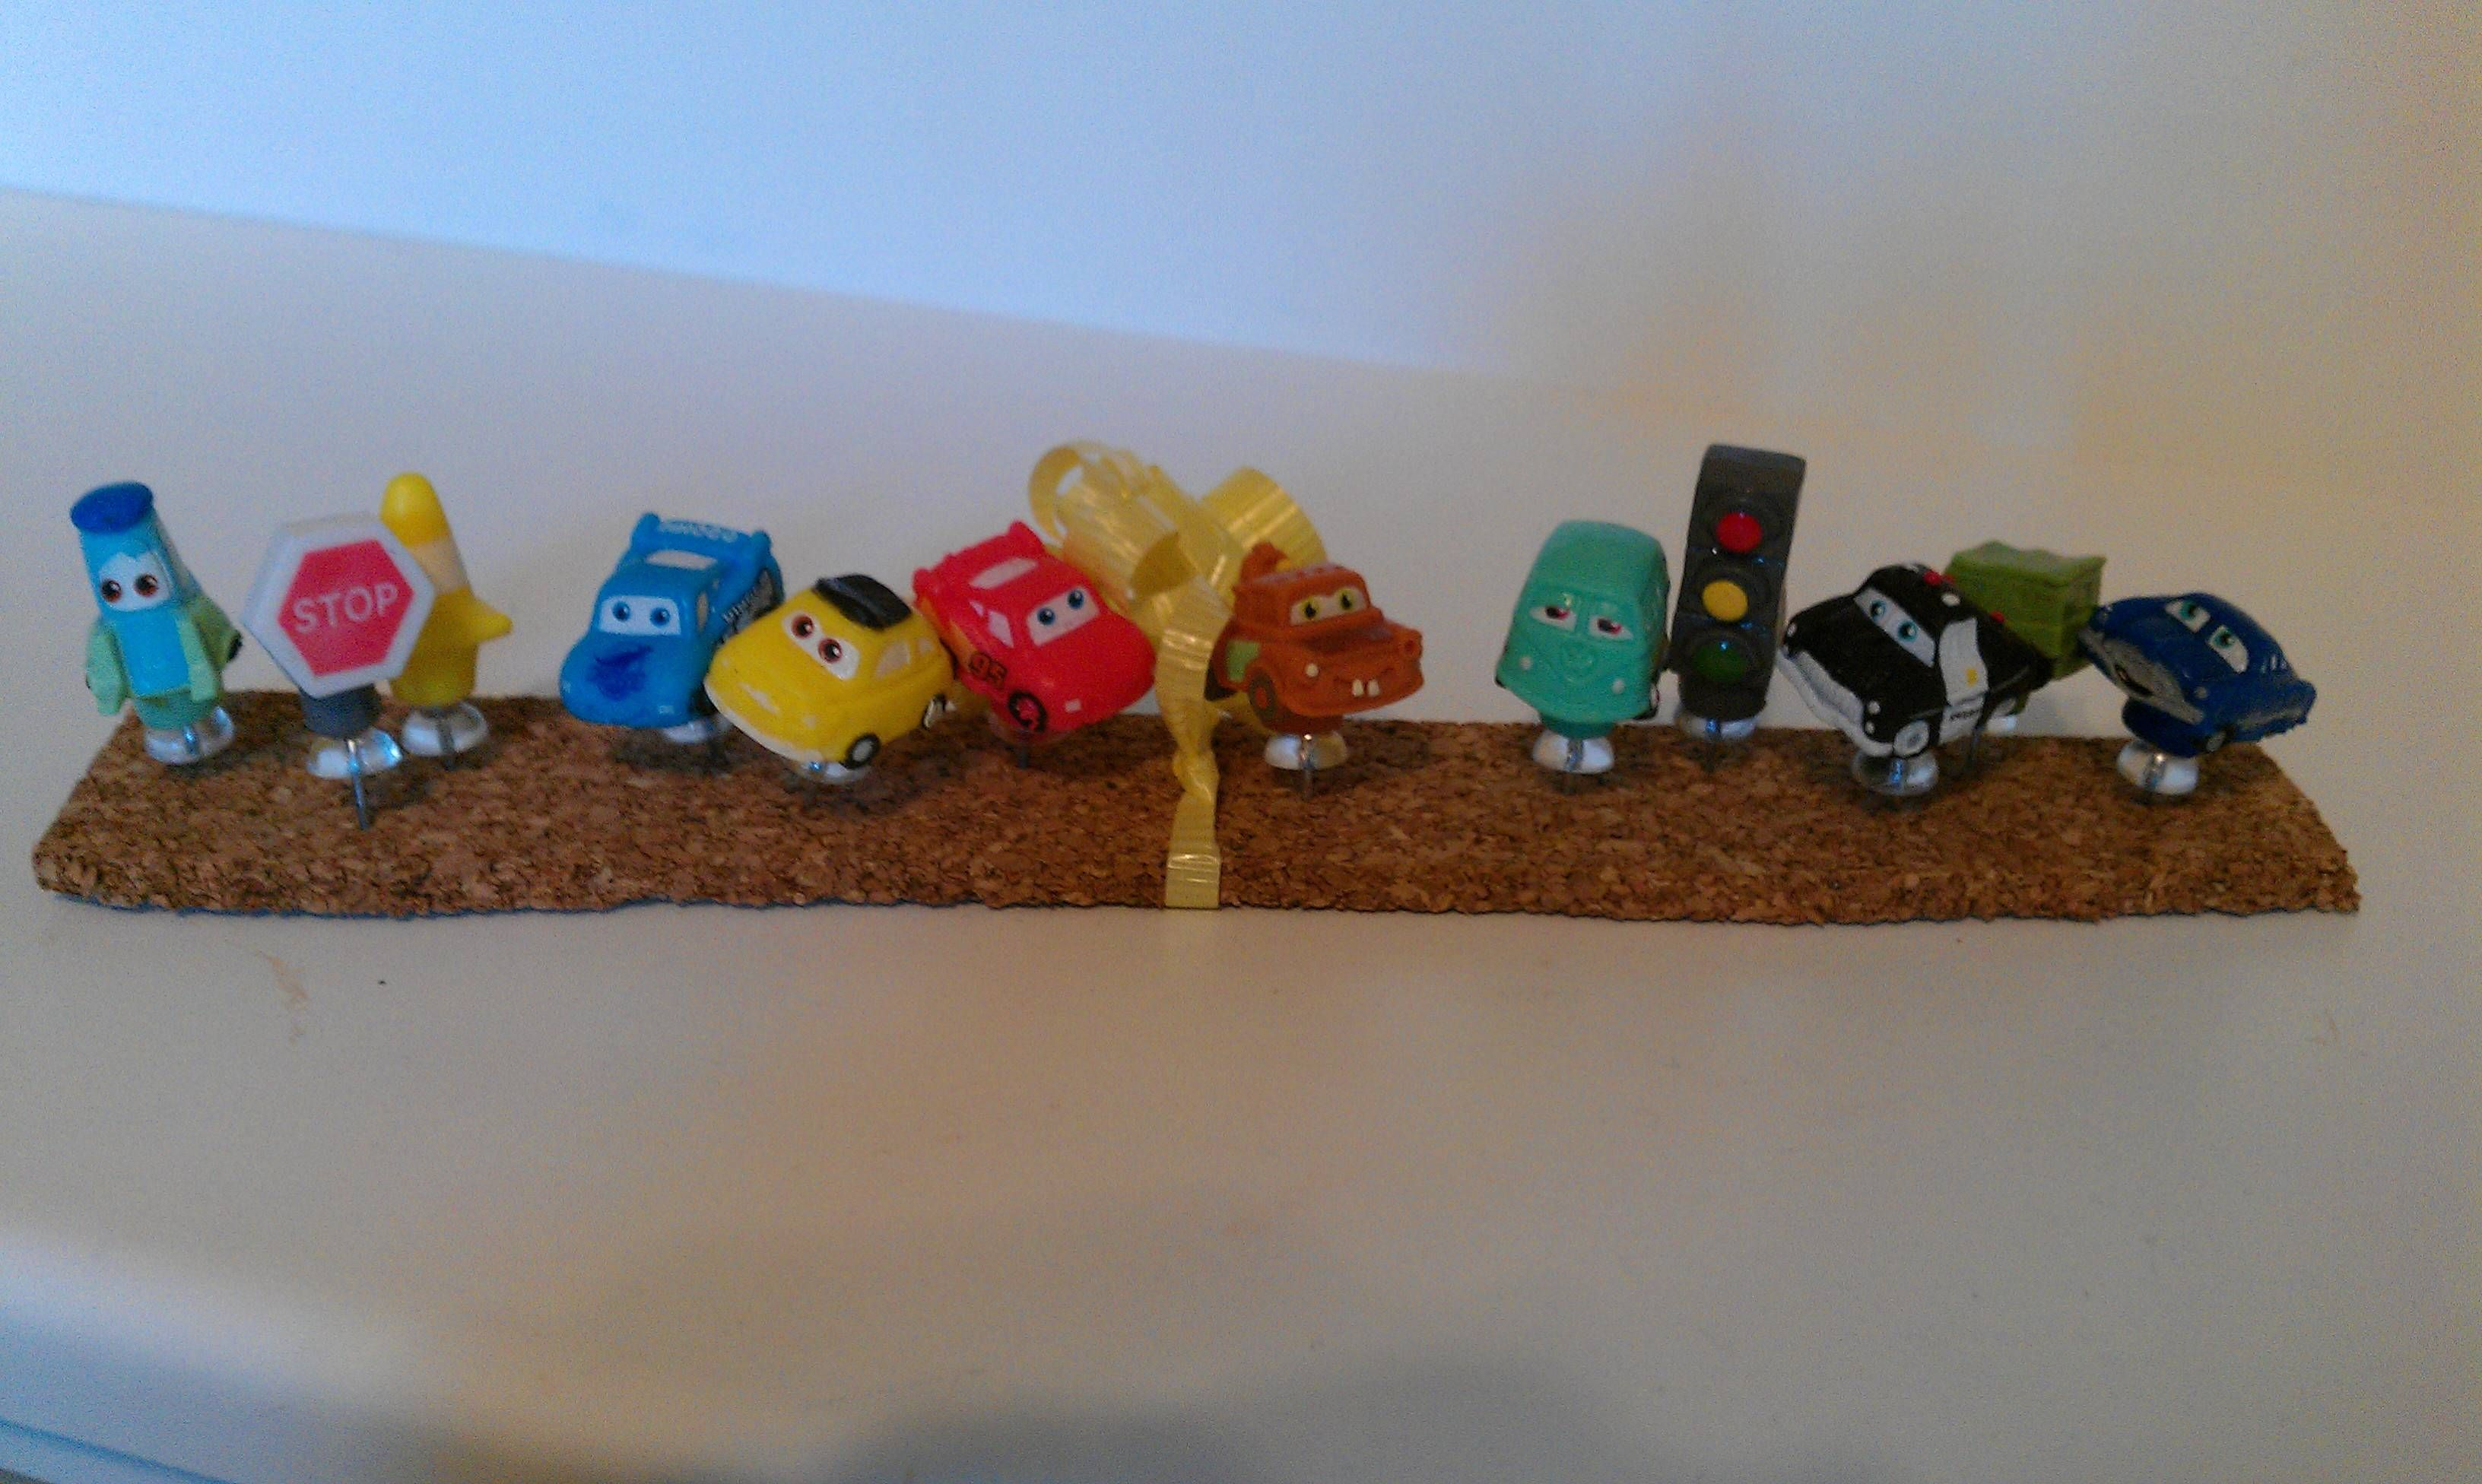 CARS Pencil toppers superglued to push pins for the cork board